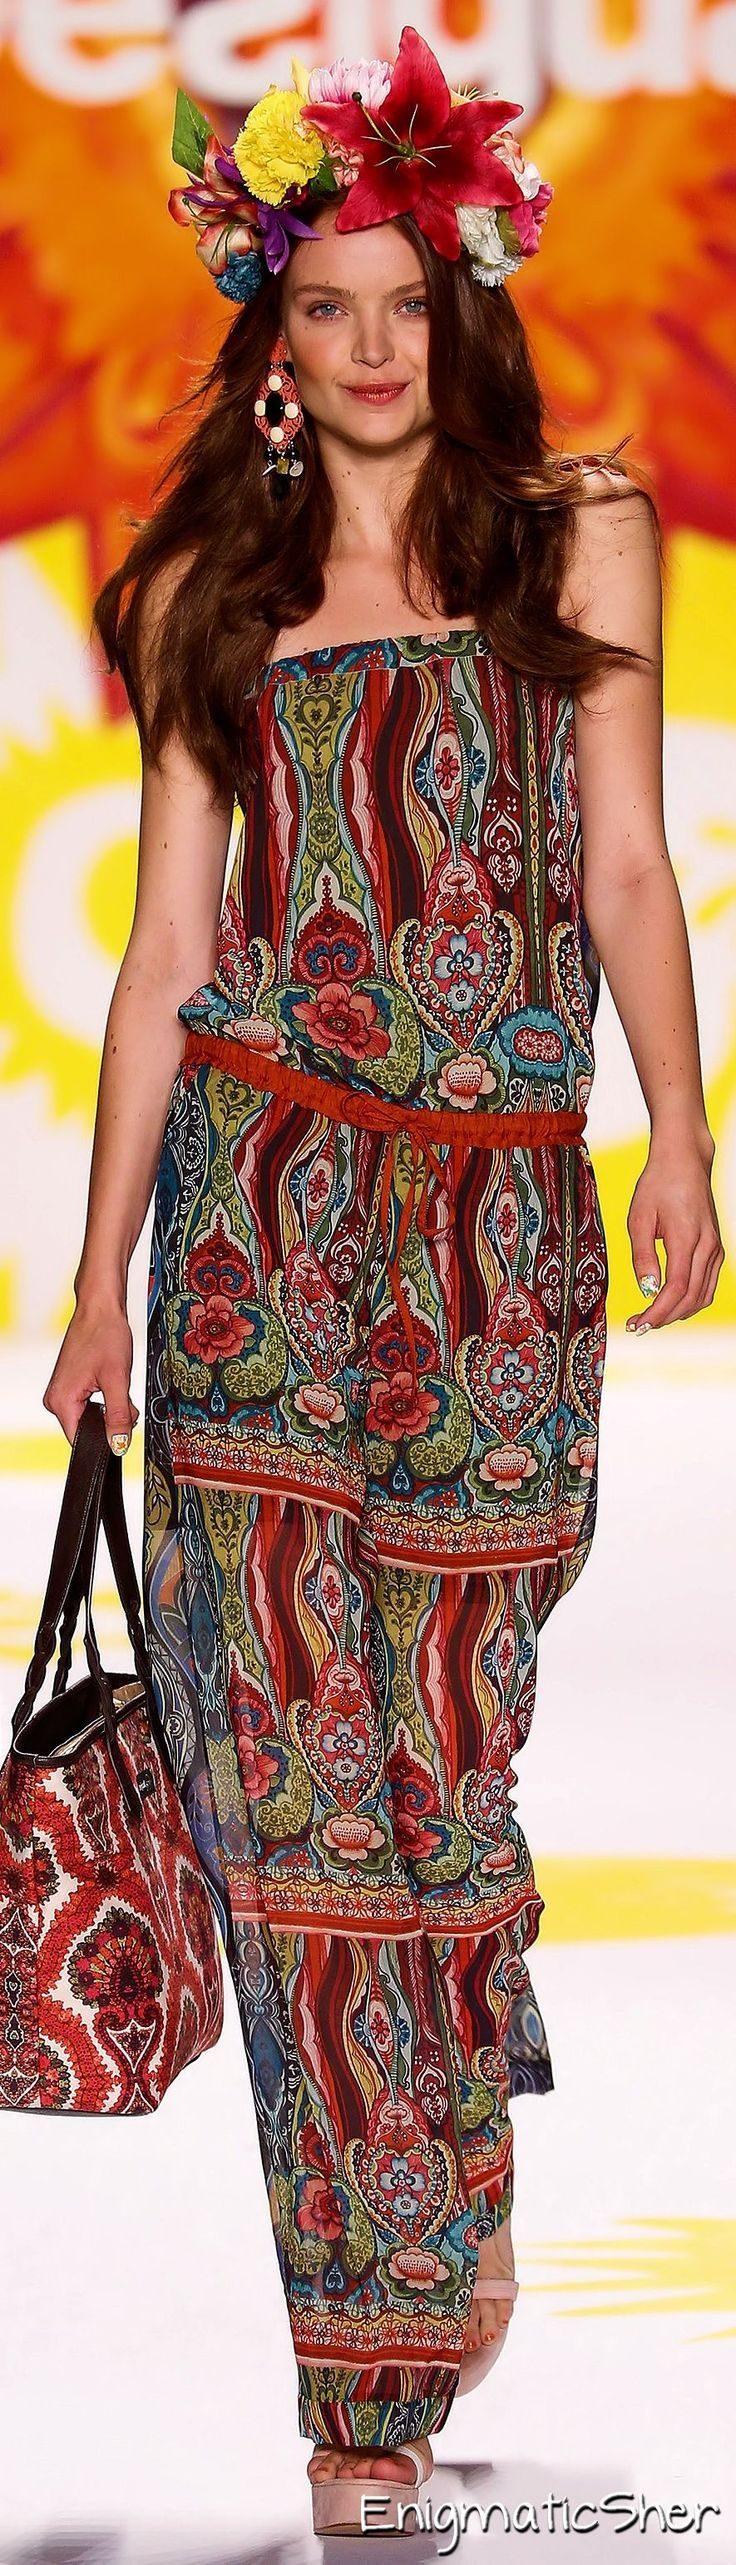 Desigual Spring Summer 2015 Ready-To-Wear----Again I can rock the outfit but the headpiece has to go!